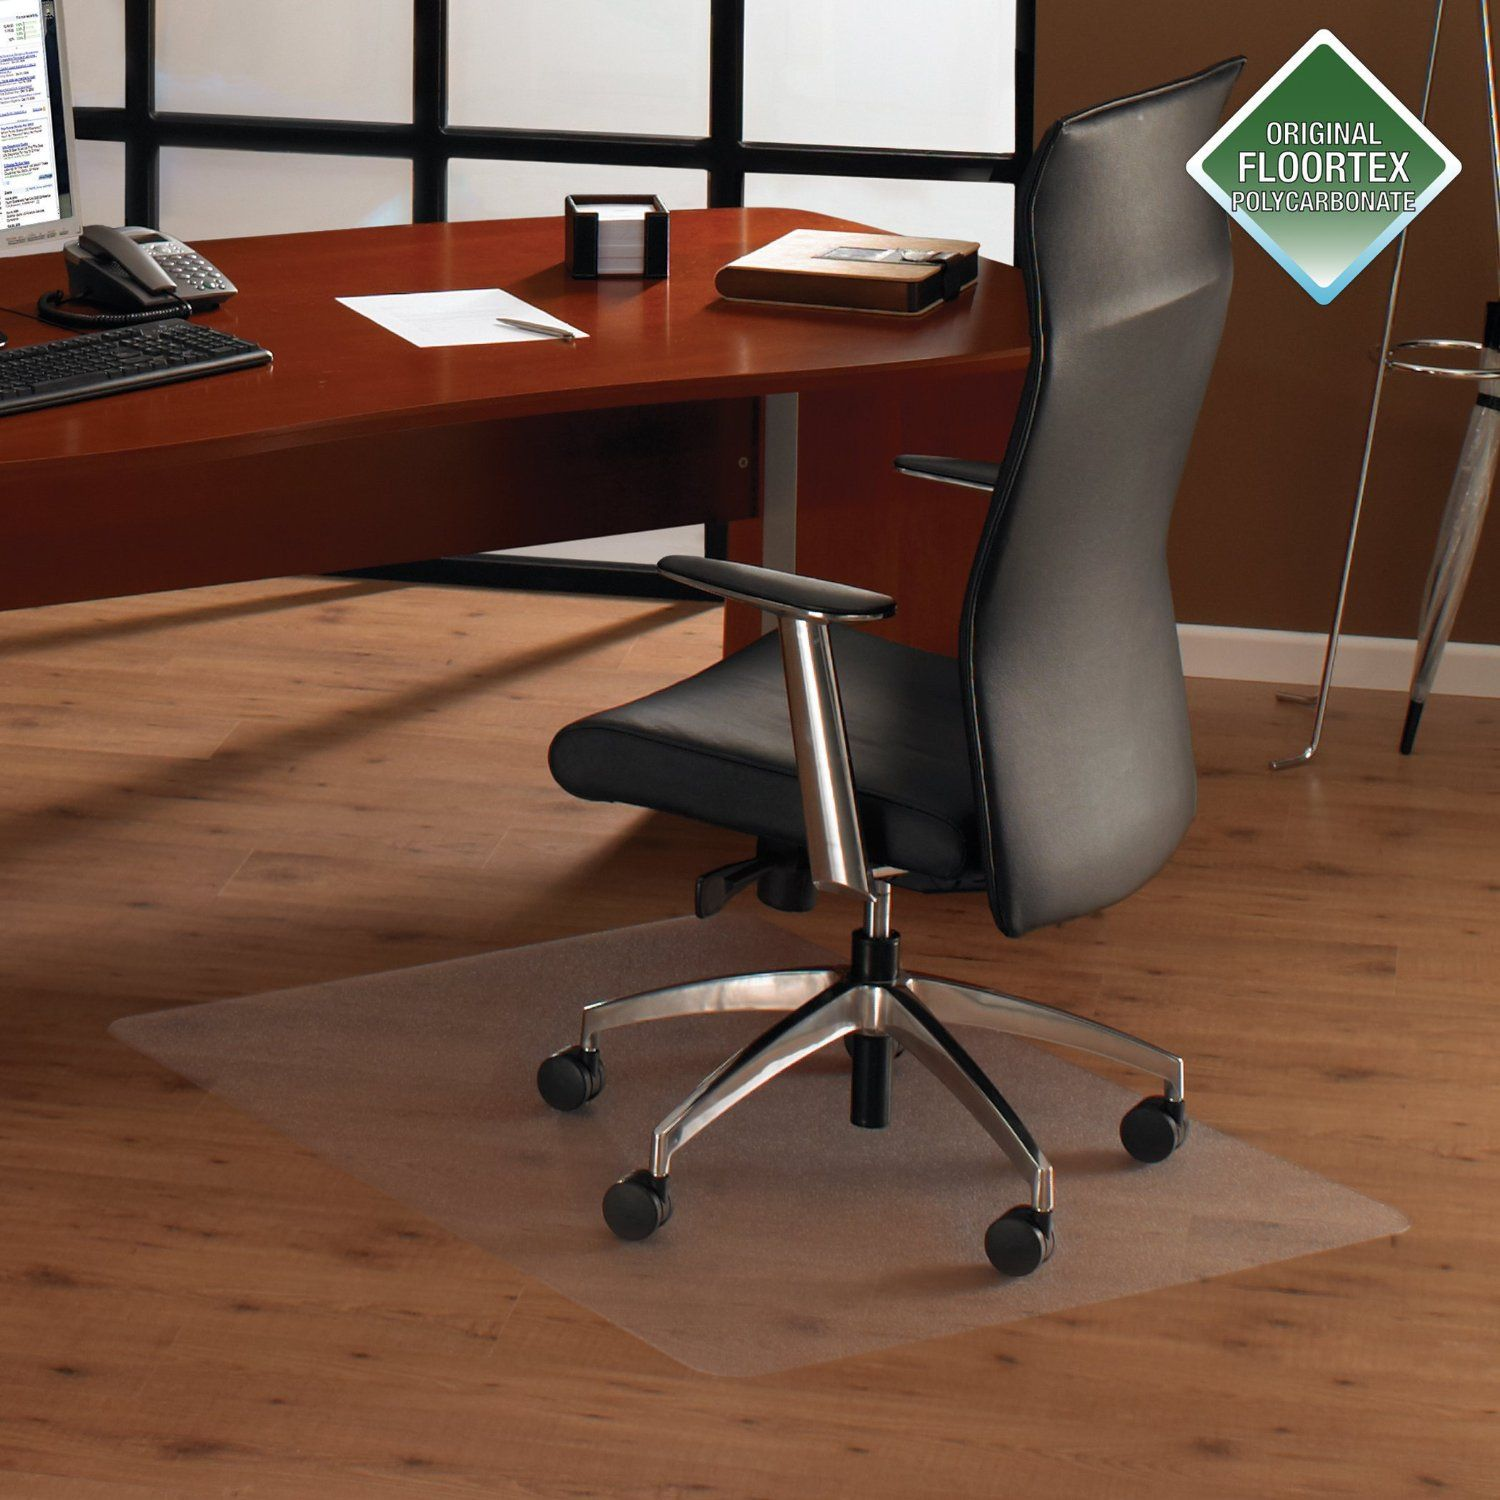 everlife office chair medium robbins com inch dp desk workstation mat by for clear dining carpet amazon kitchen pile es